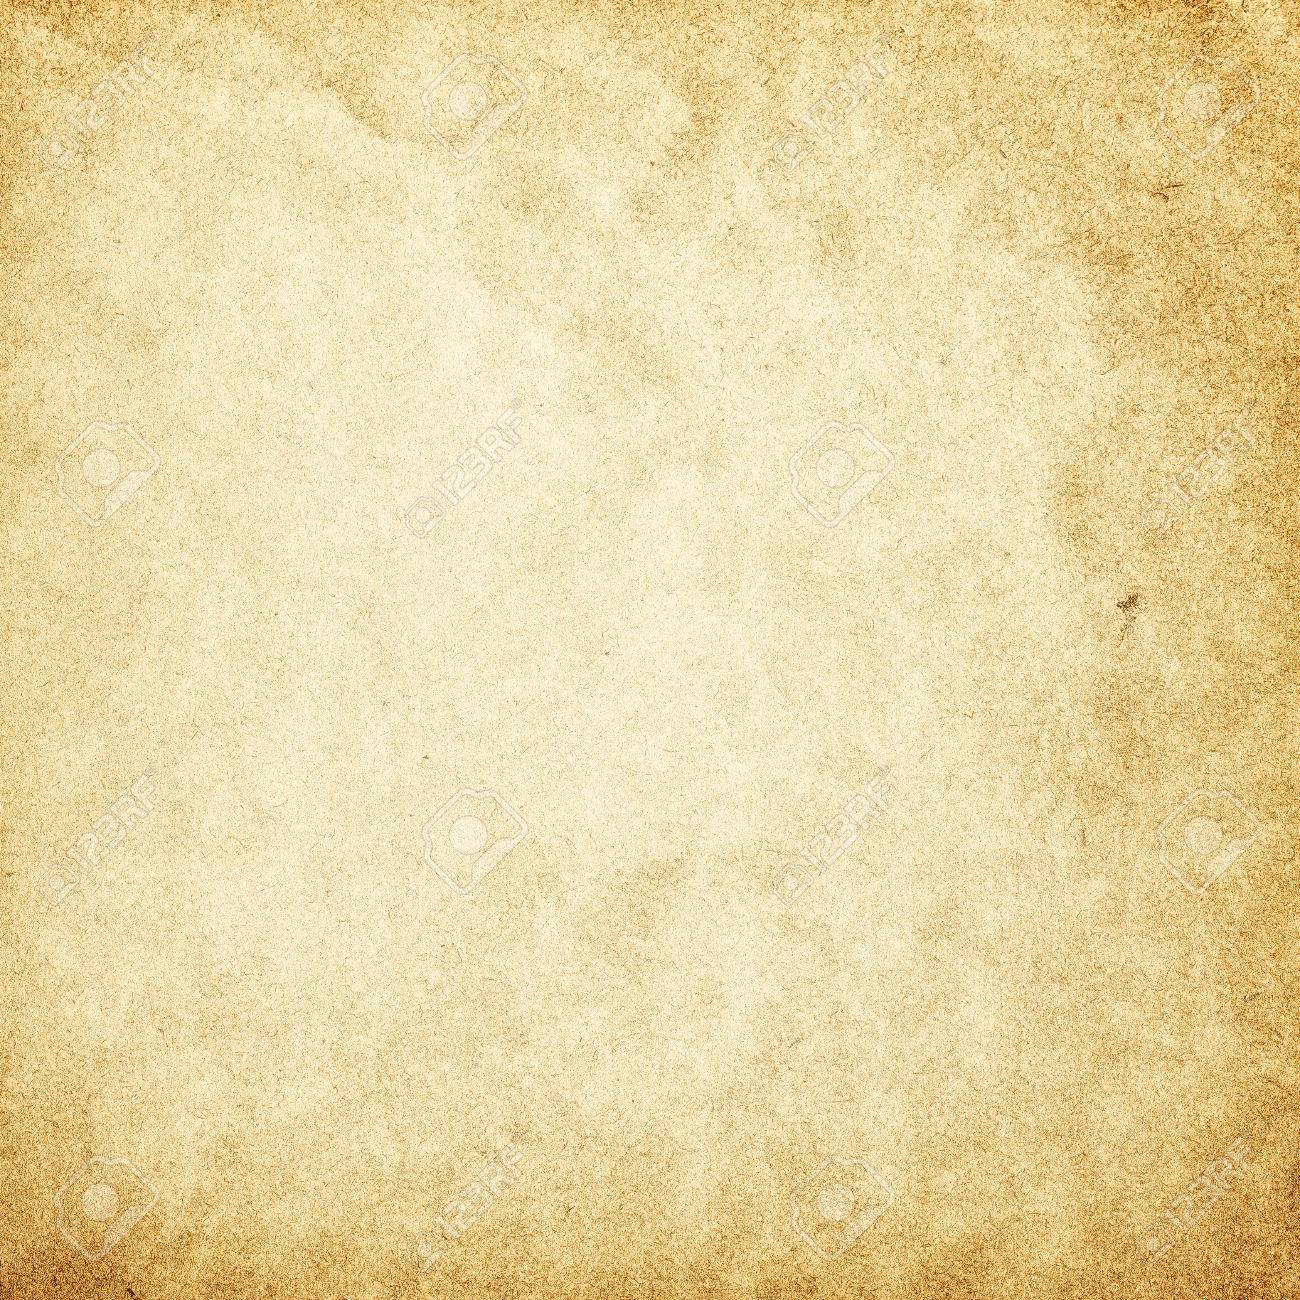 Vintage paper template for texture or background